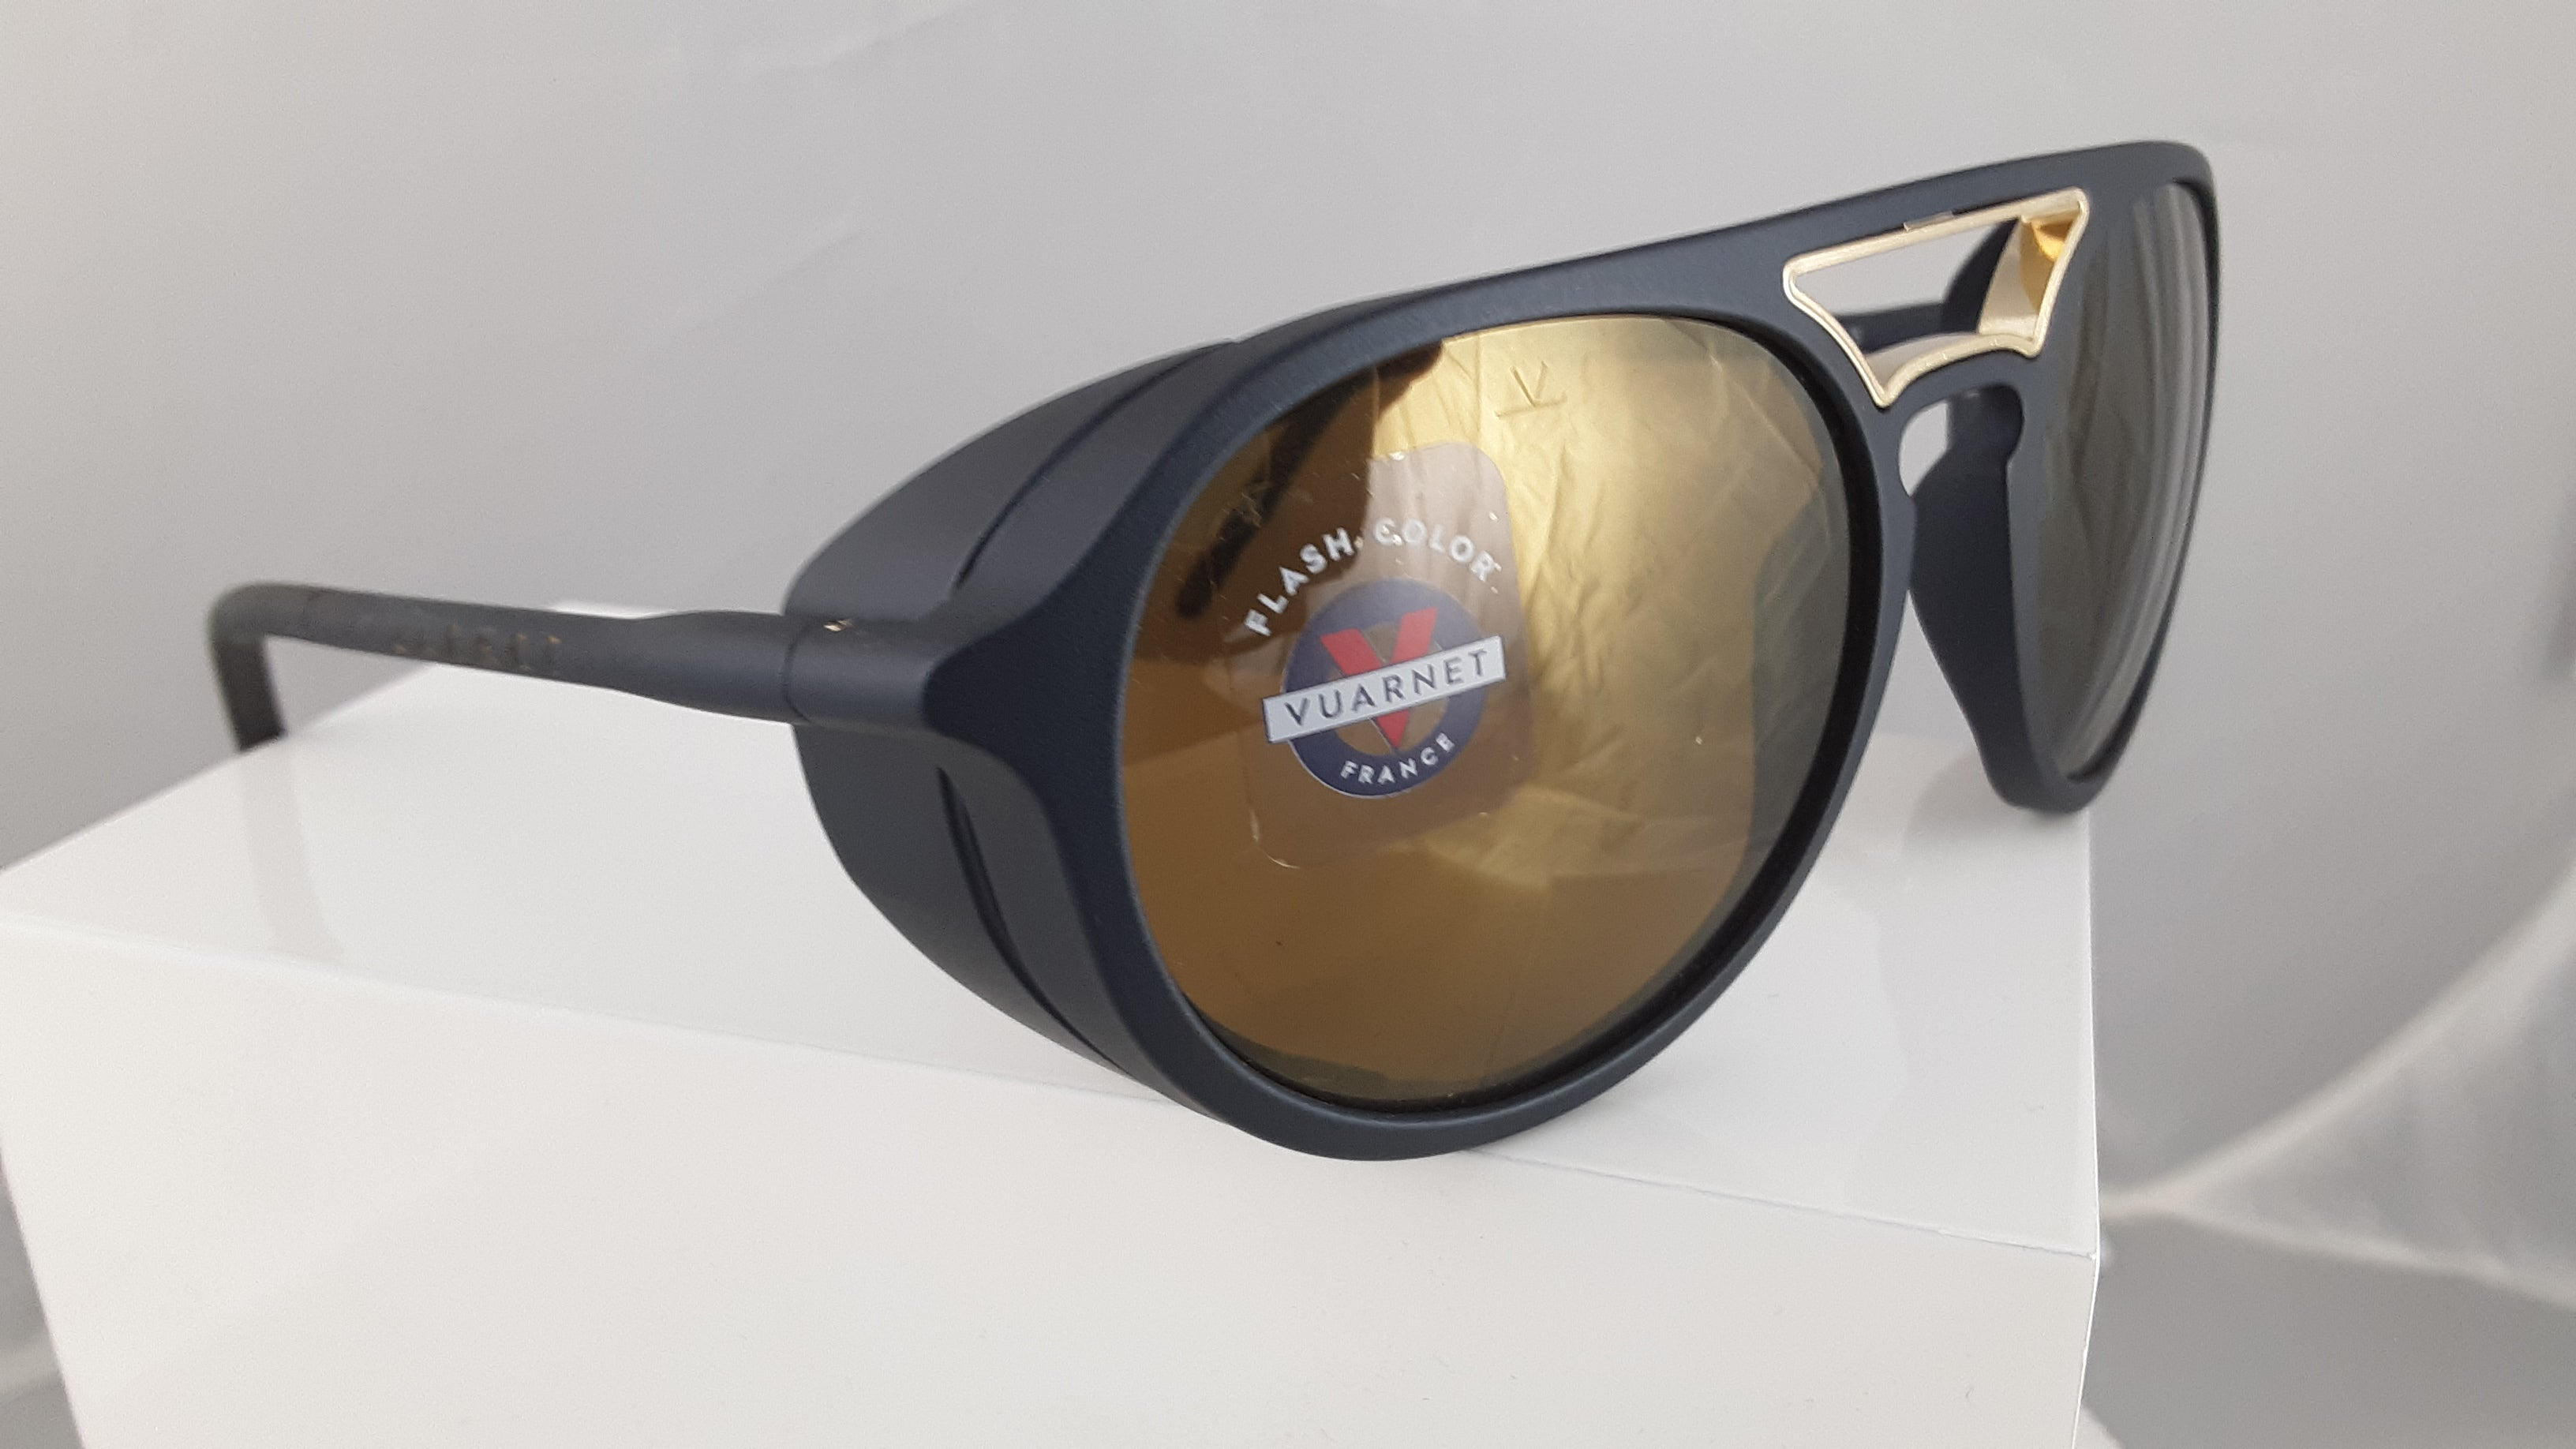 Vuarnet Flash Color black sunglasses with gold lenses